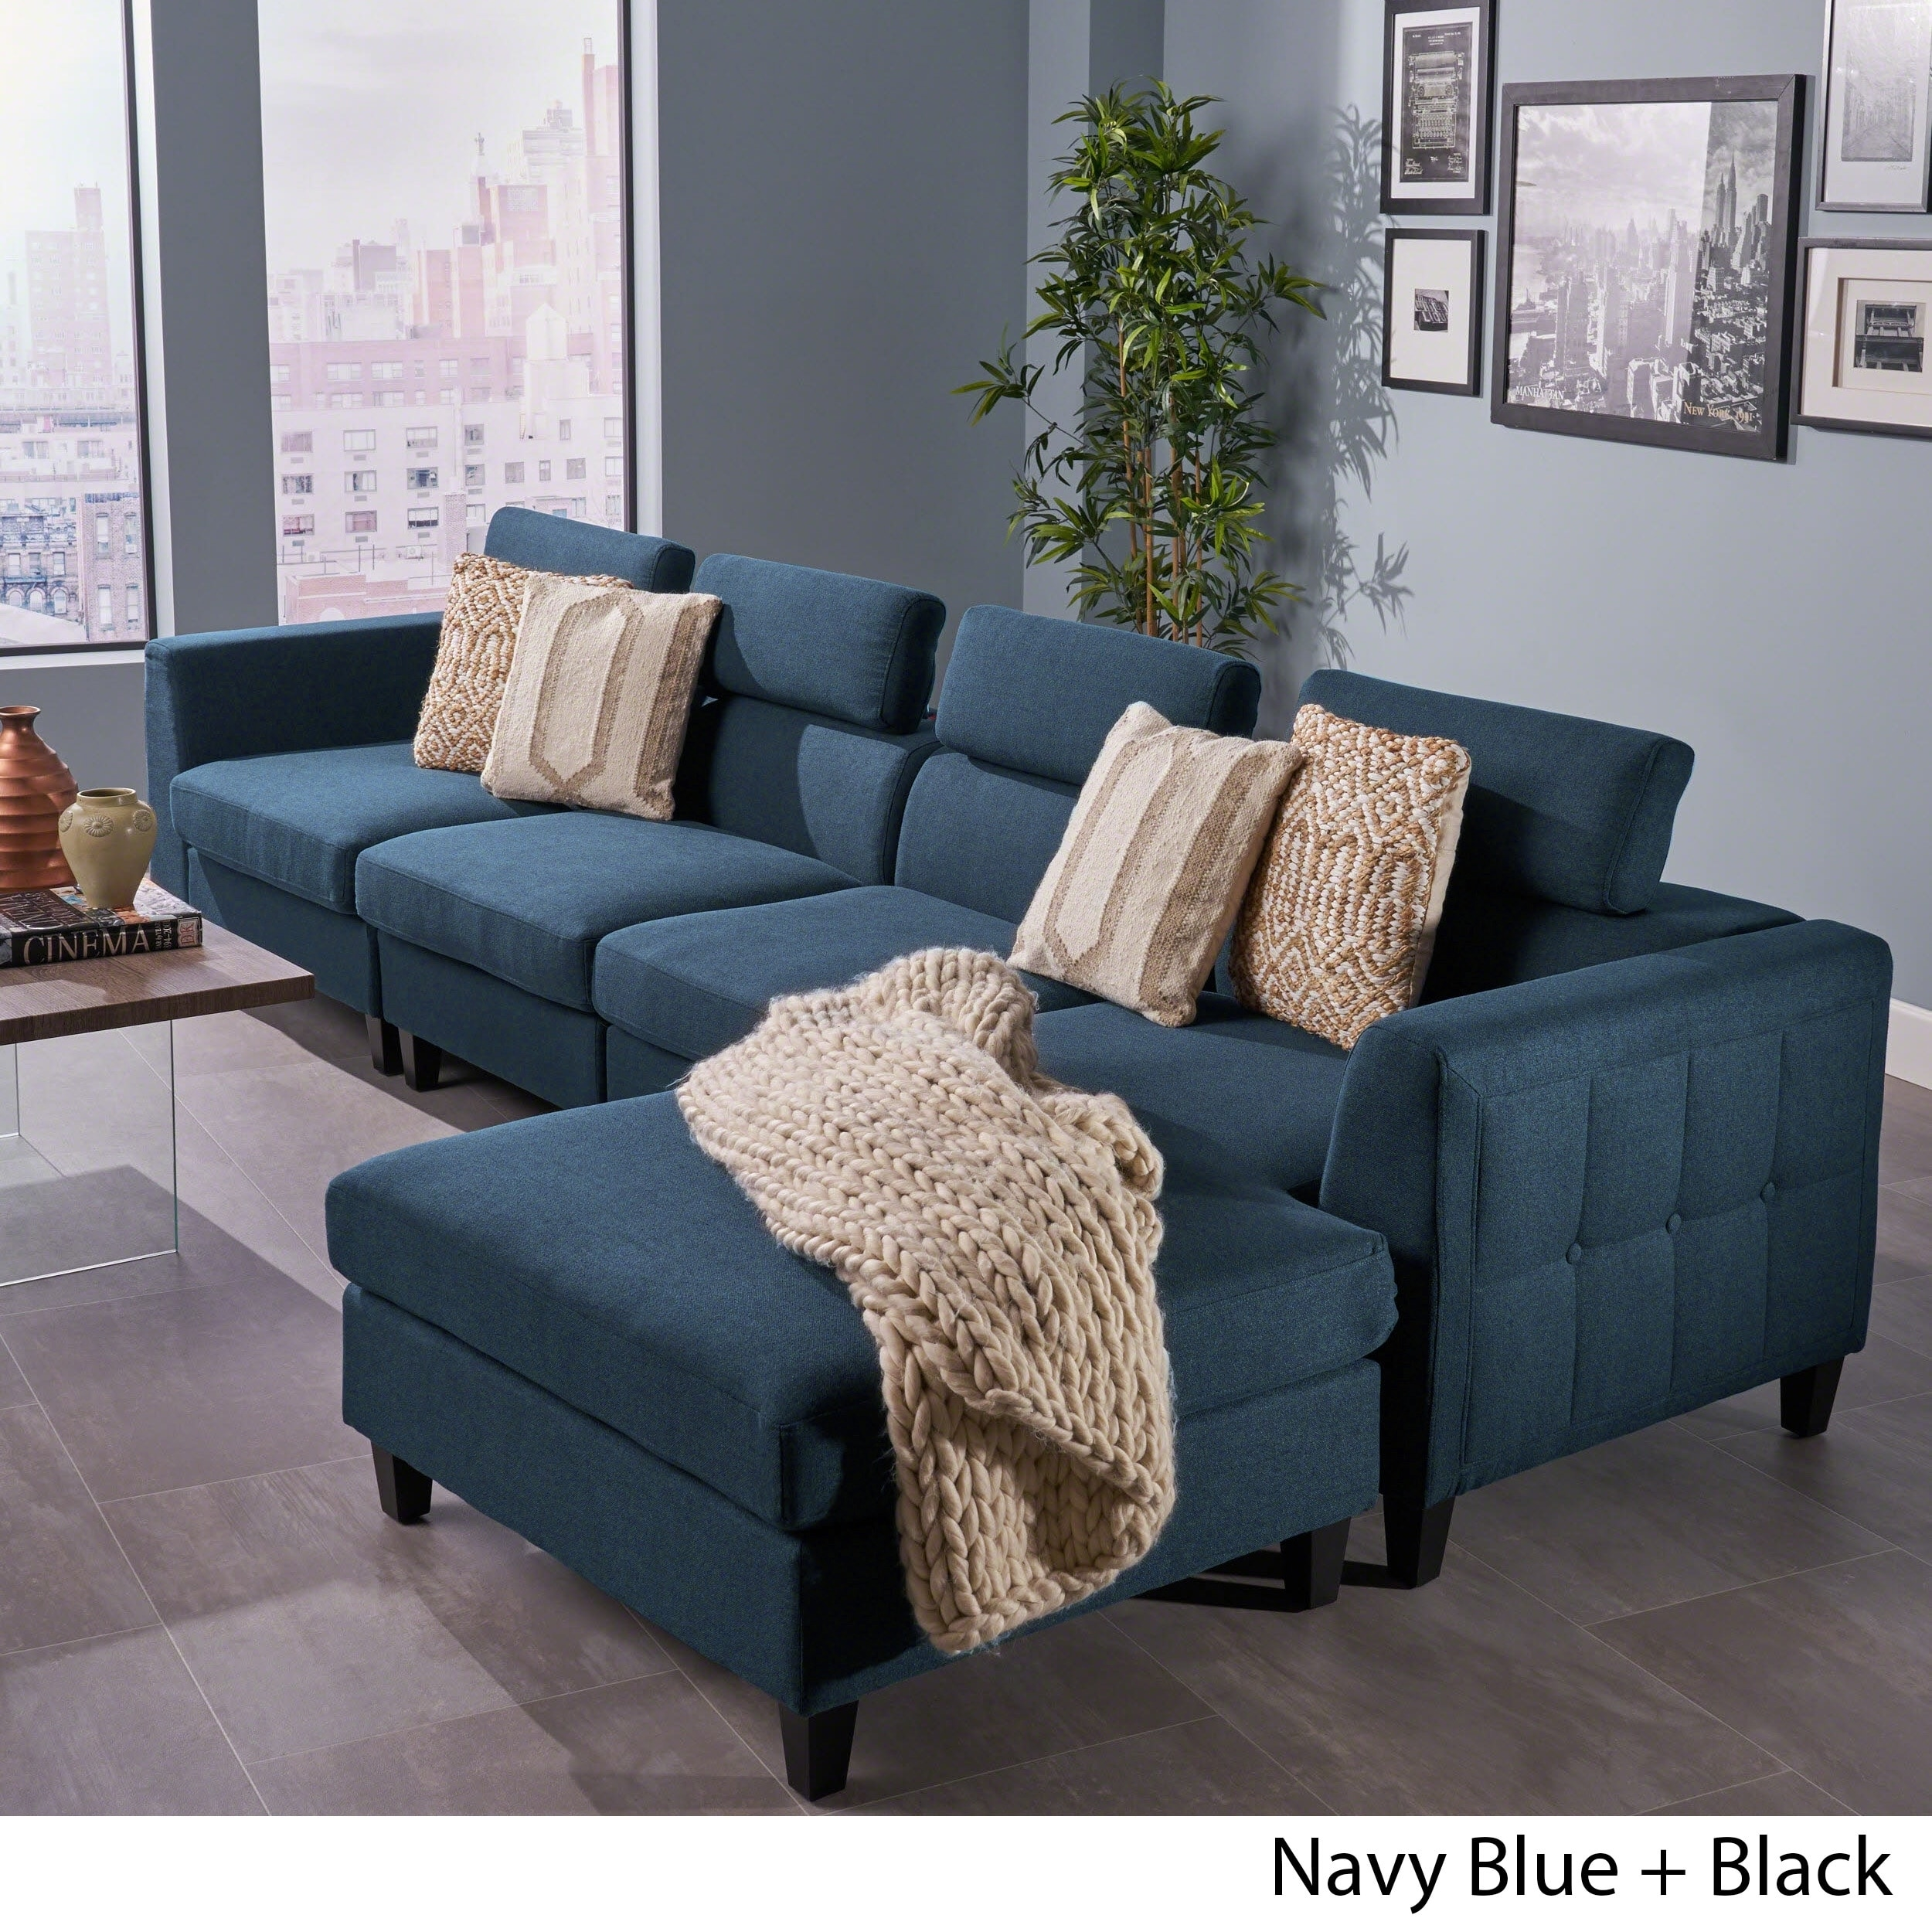 Remarkable Amias Modern 4 Piece Chaise Sectional Sofa Set By Christopher Knight Home Onthecornerstone Fun Painted Chair Ideas Images Onthecornerstoneorg